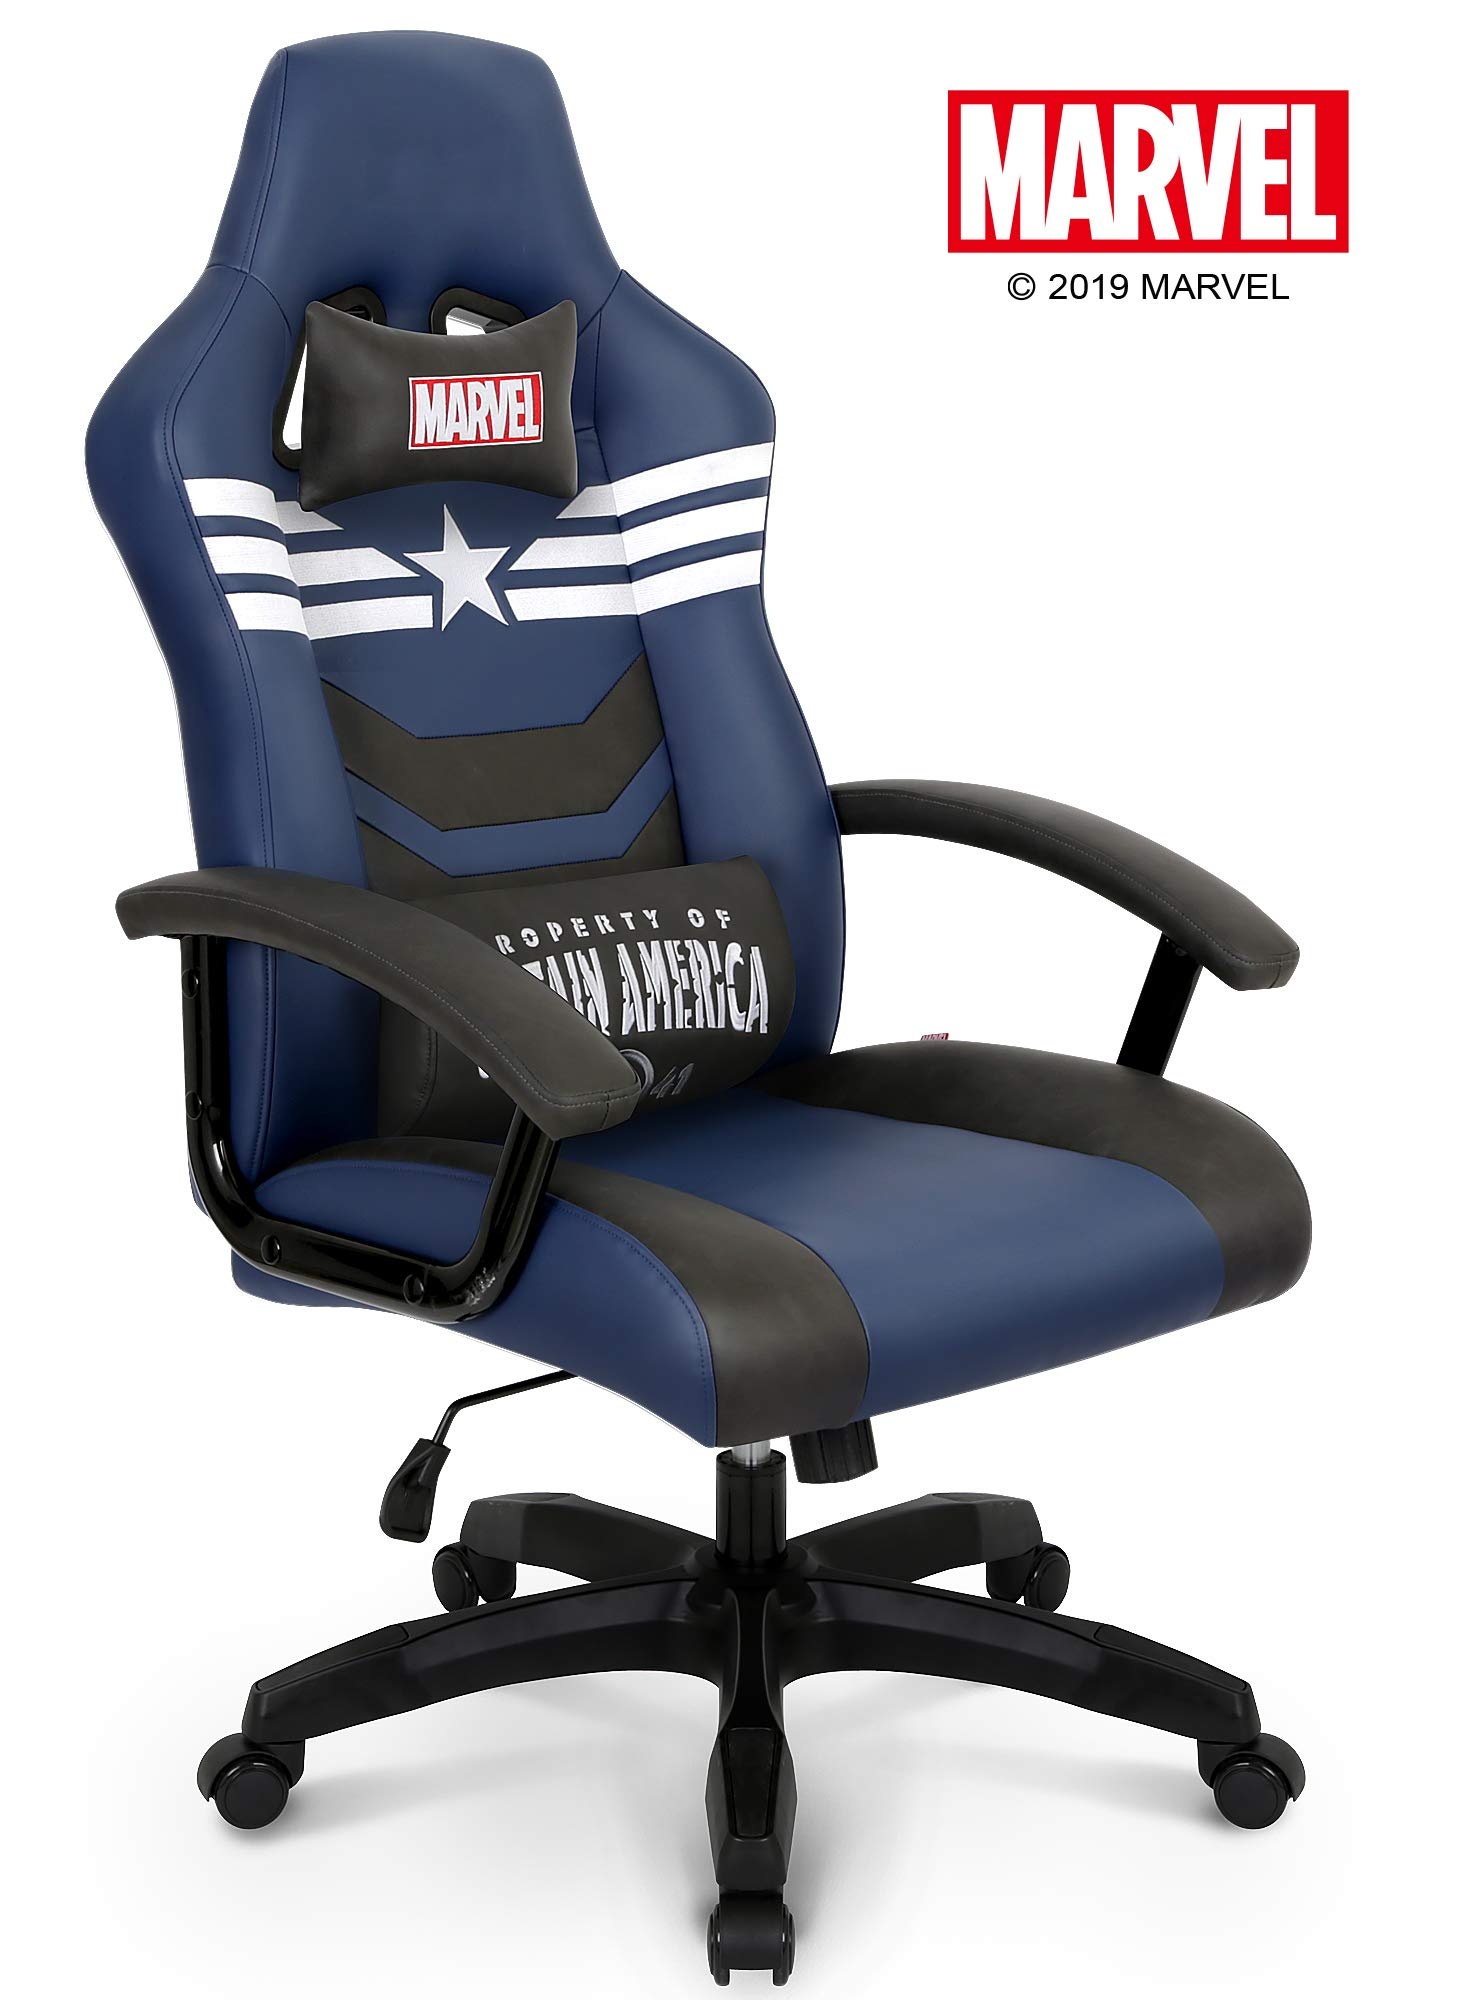 Neo Chair Licensed Marvel Avengers Gaming High End Ergonomic Neck Lumbar Support Armrests Reclining and Tilting Computer Desk Office Executive Leather Racing by Neo Chair